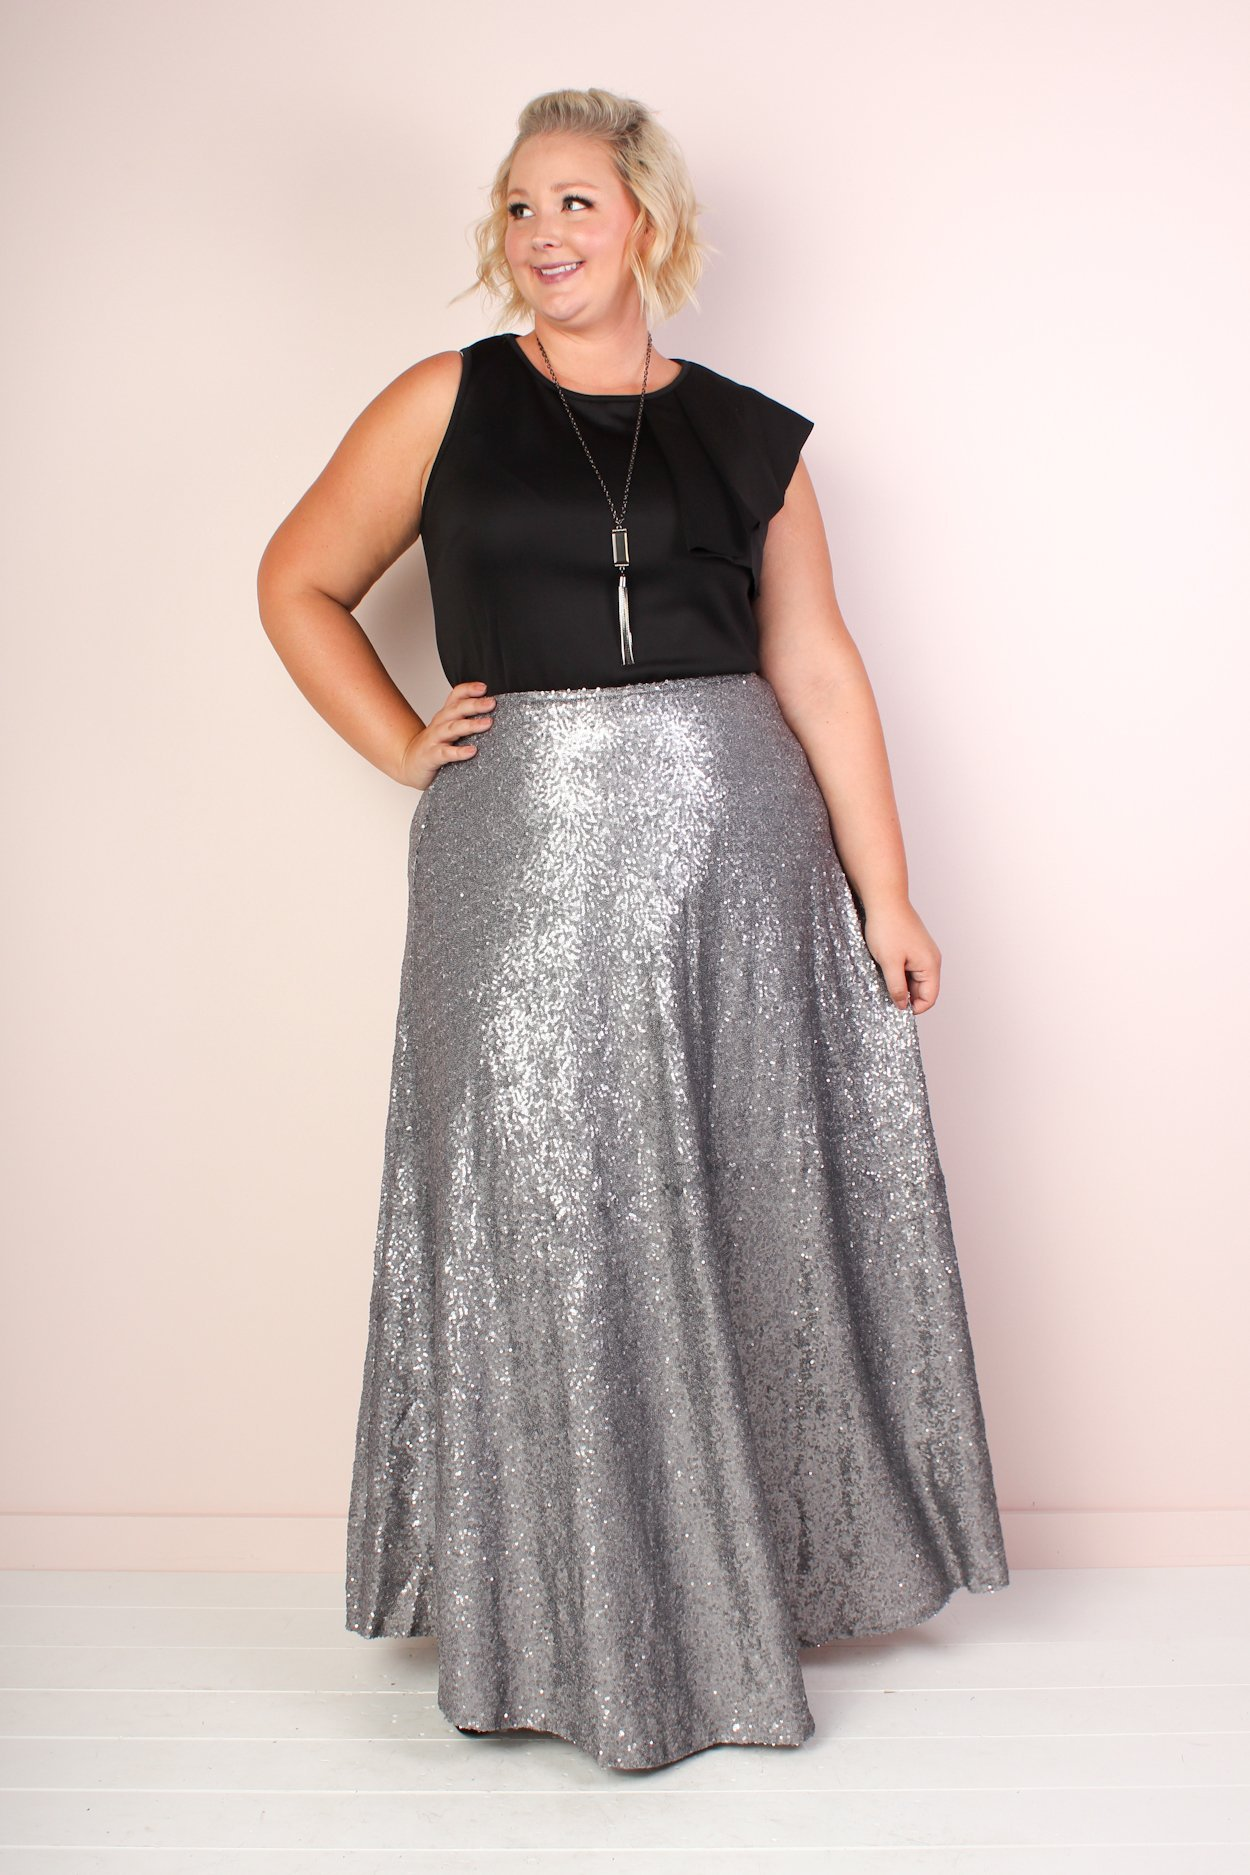 7b5d47eeb6b02f Image of The Showstopper Sequin Maxi Skirt - Silver